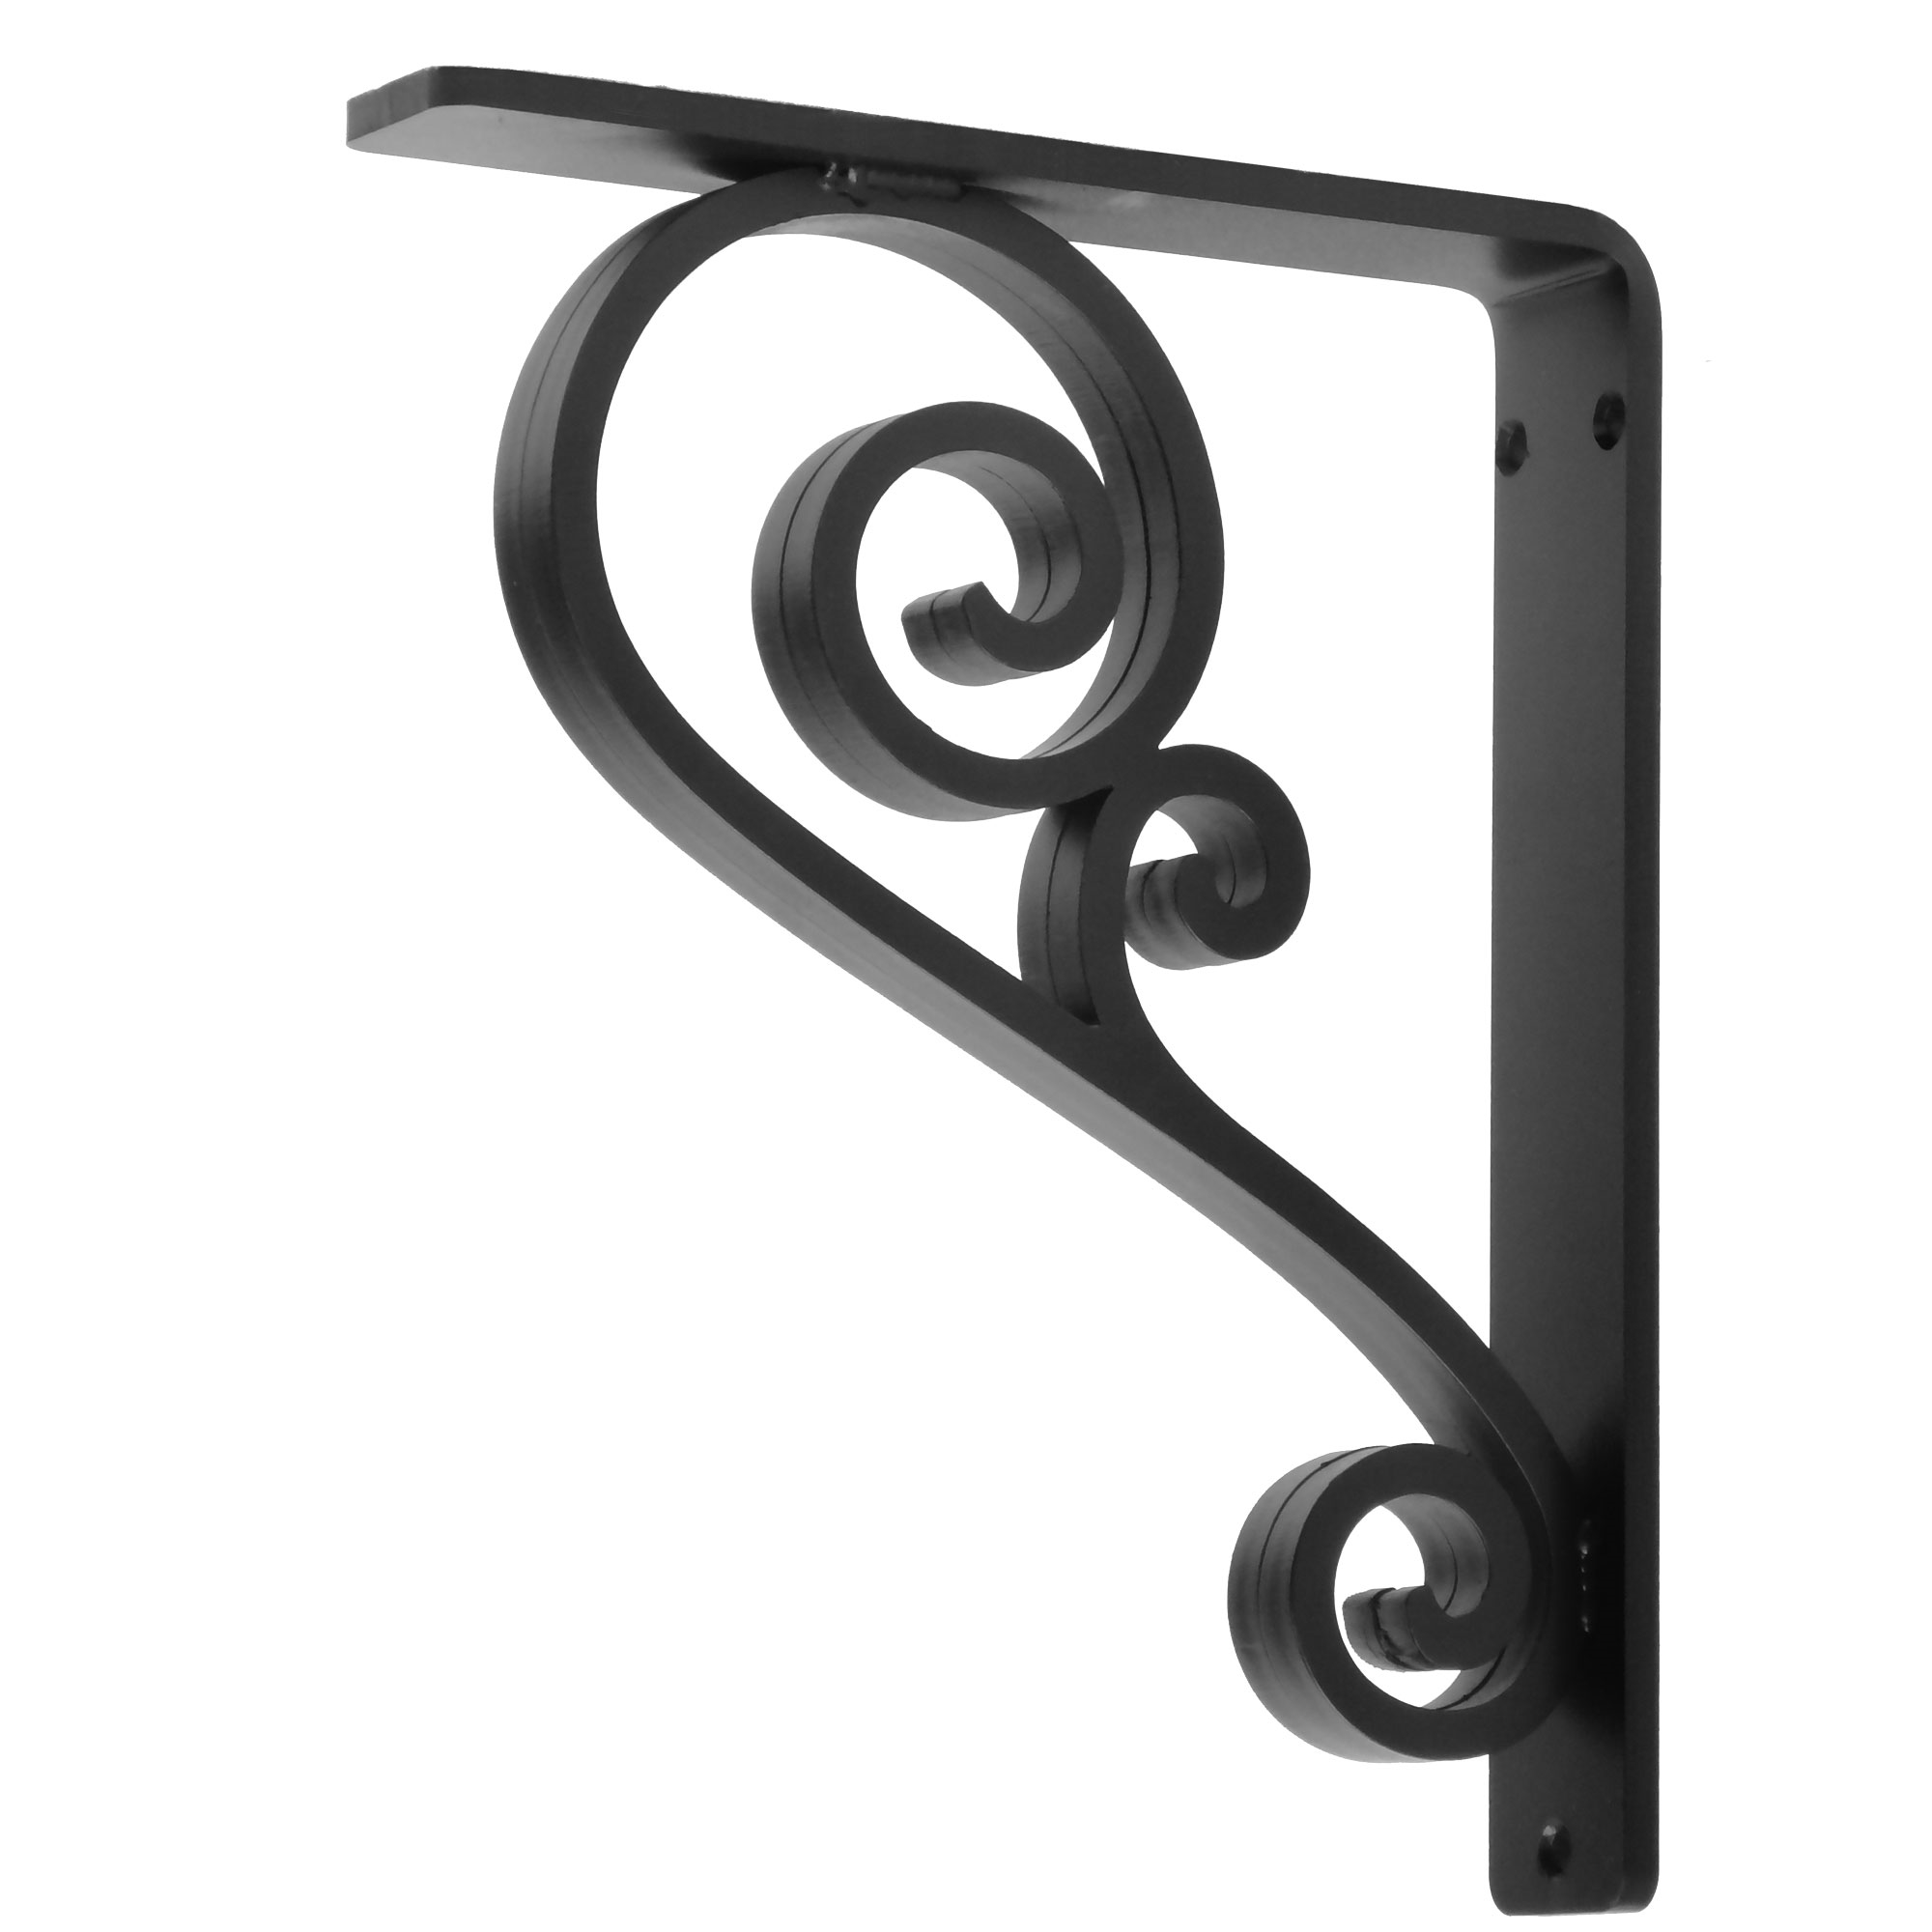 classic scroll wrought iron corbel 1 5 wide 6 bracket. Black Bedroom Furniture Sets. Home Design Ideas